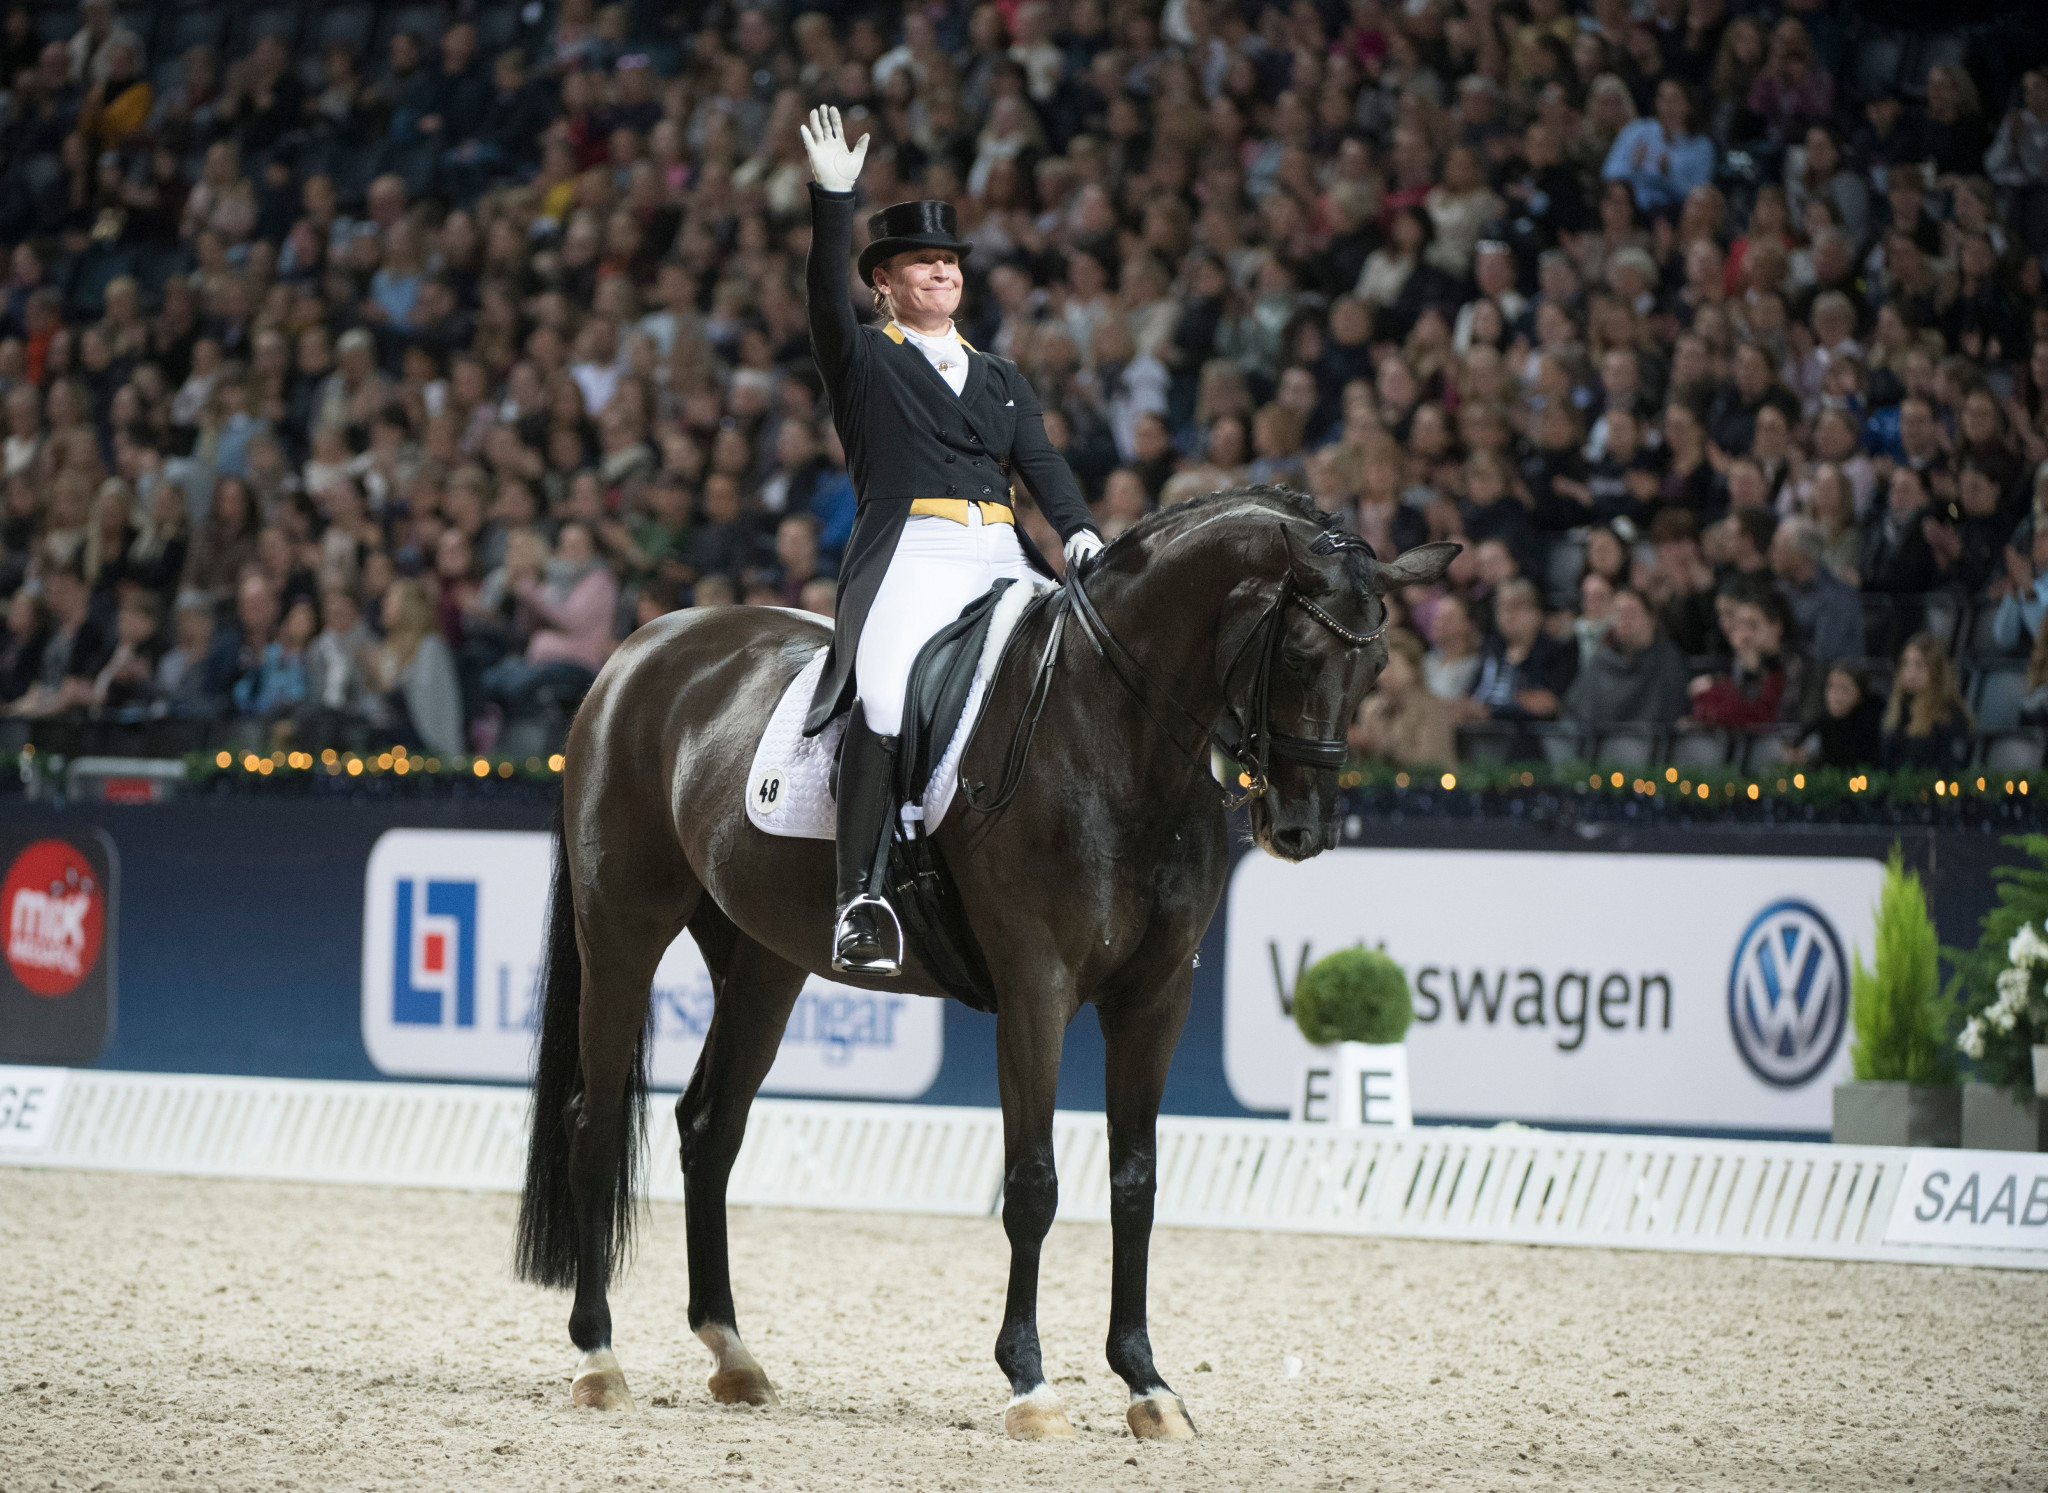 Defending champion Isabel Werth of Germany finished third in today's event ©Getty Images